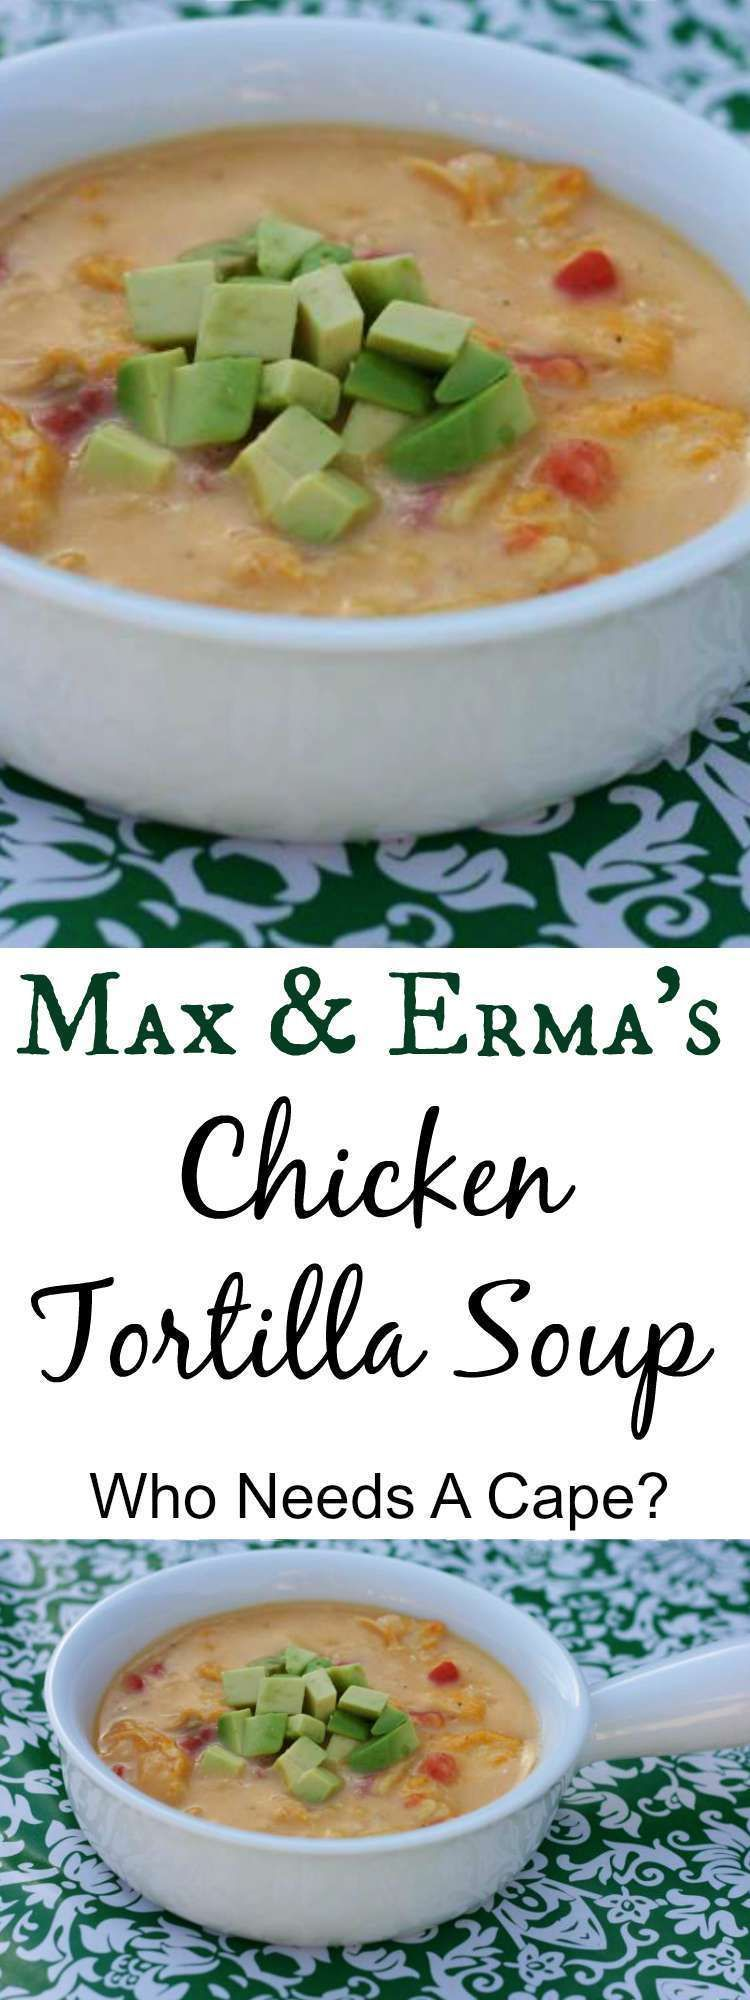 {copycat} Max & Erma's Chicken Tortilla Soup #chickentortillasoup